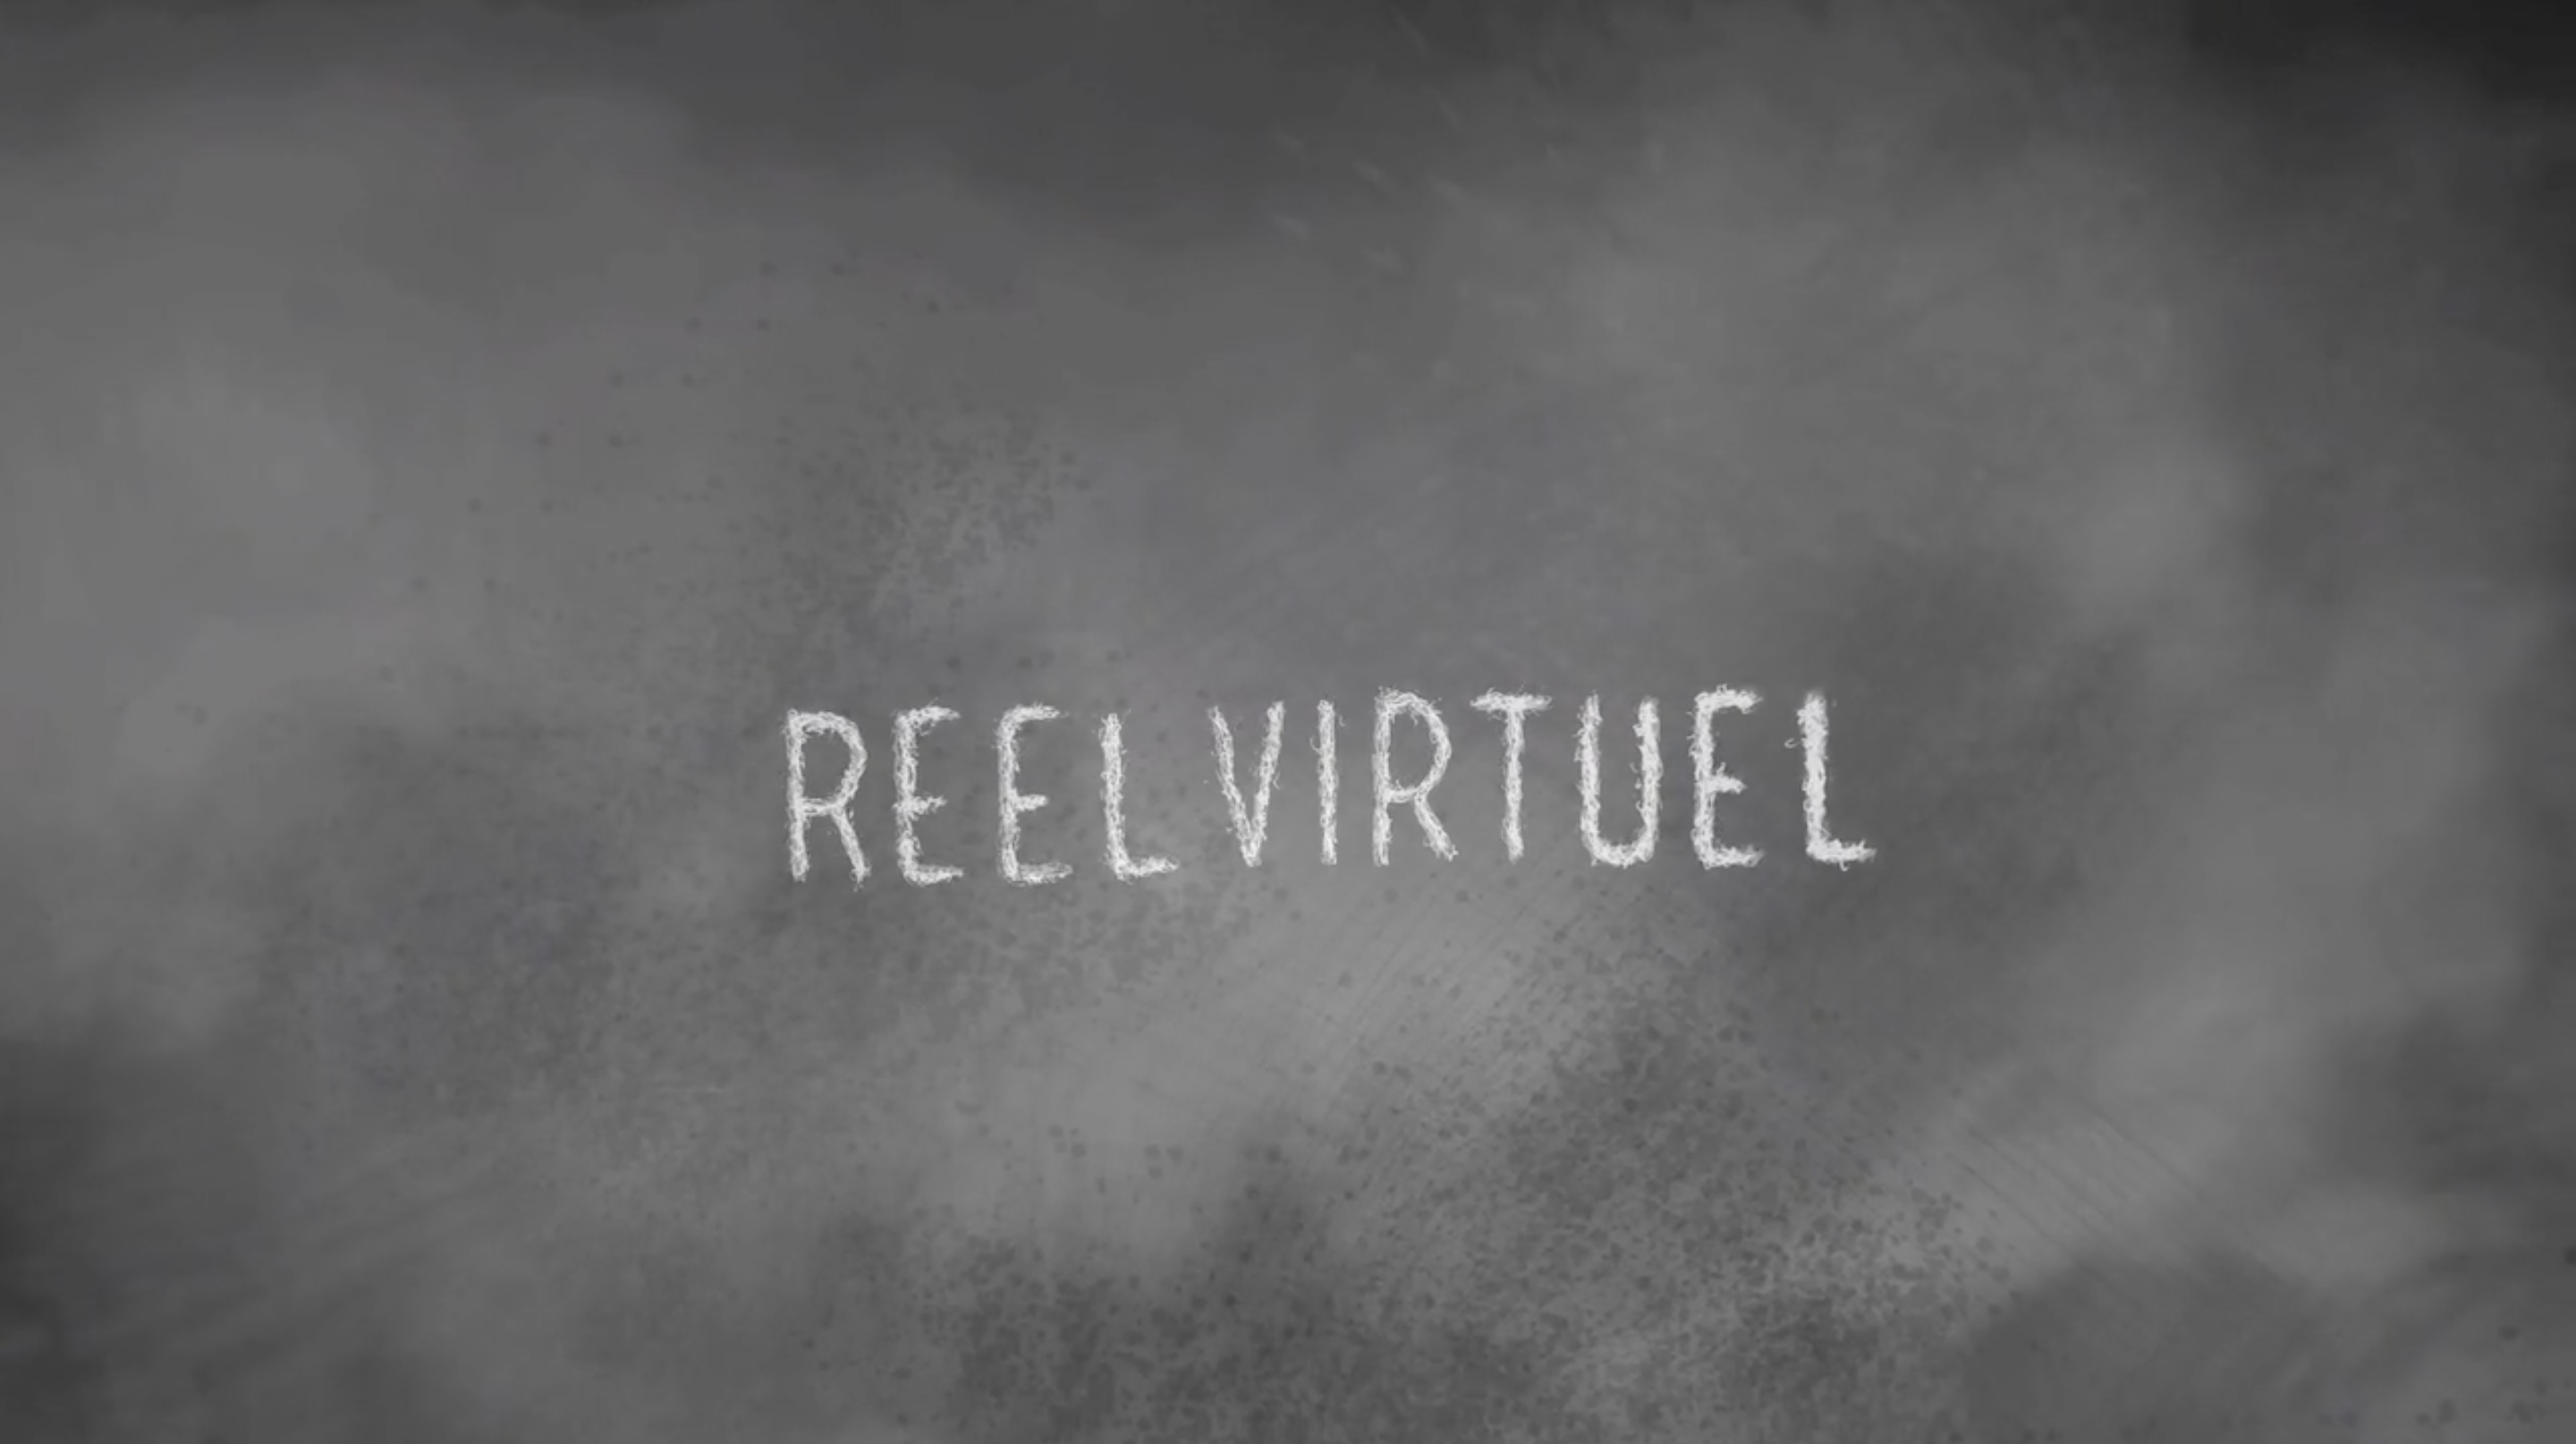 réel virtuel <br> test animation, Sébastien Baillou